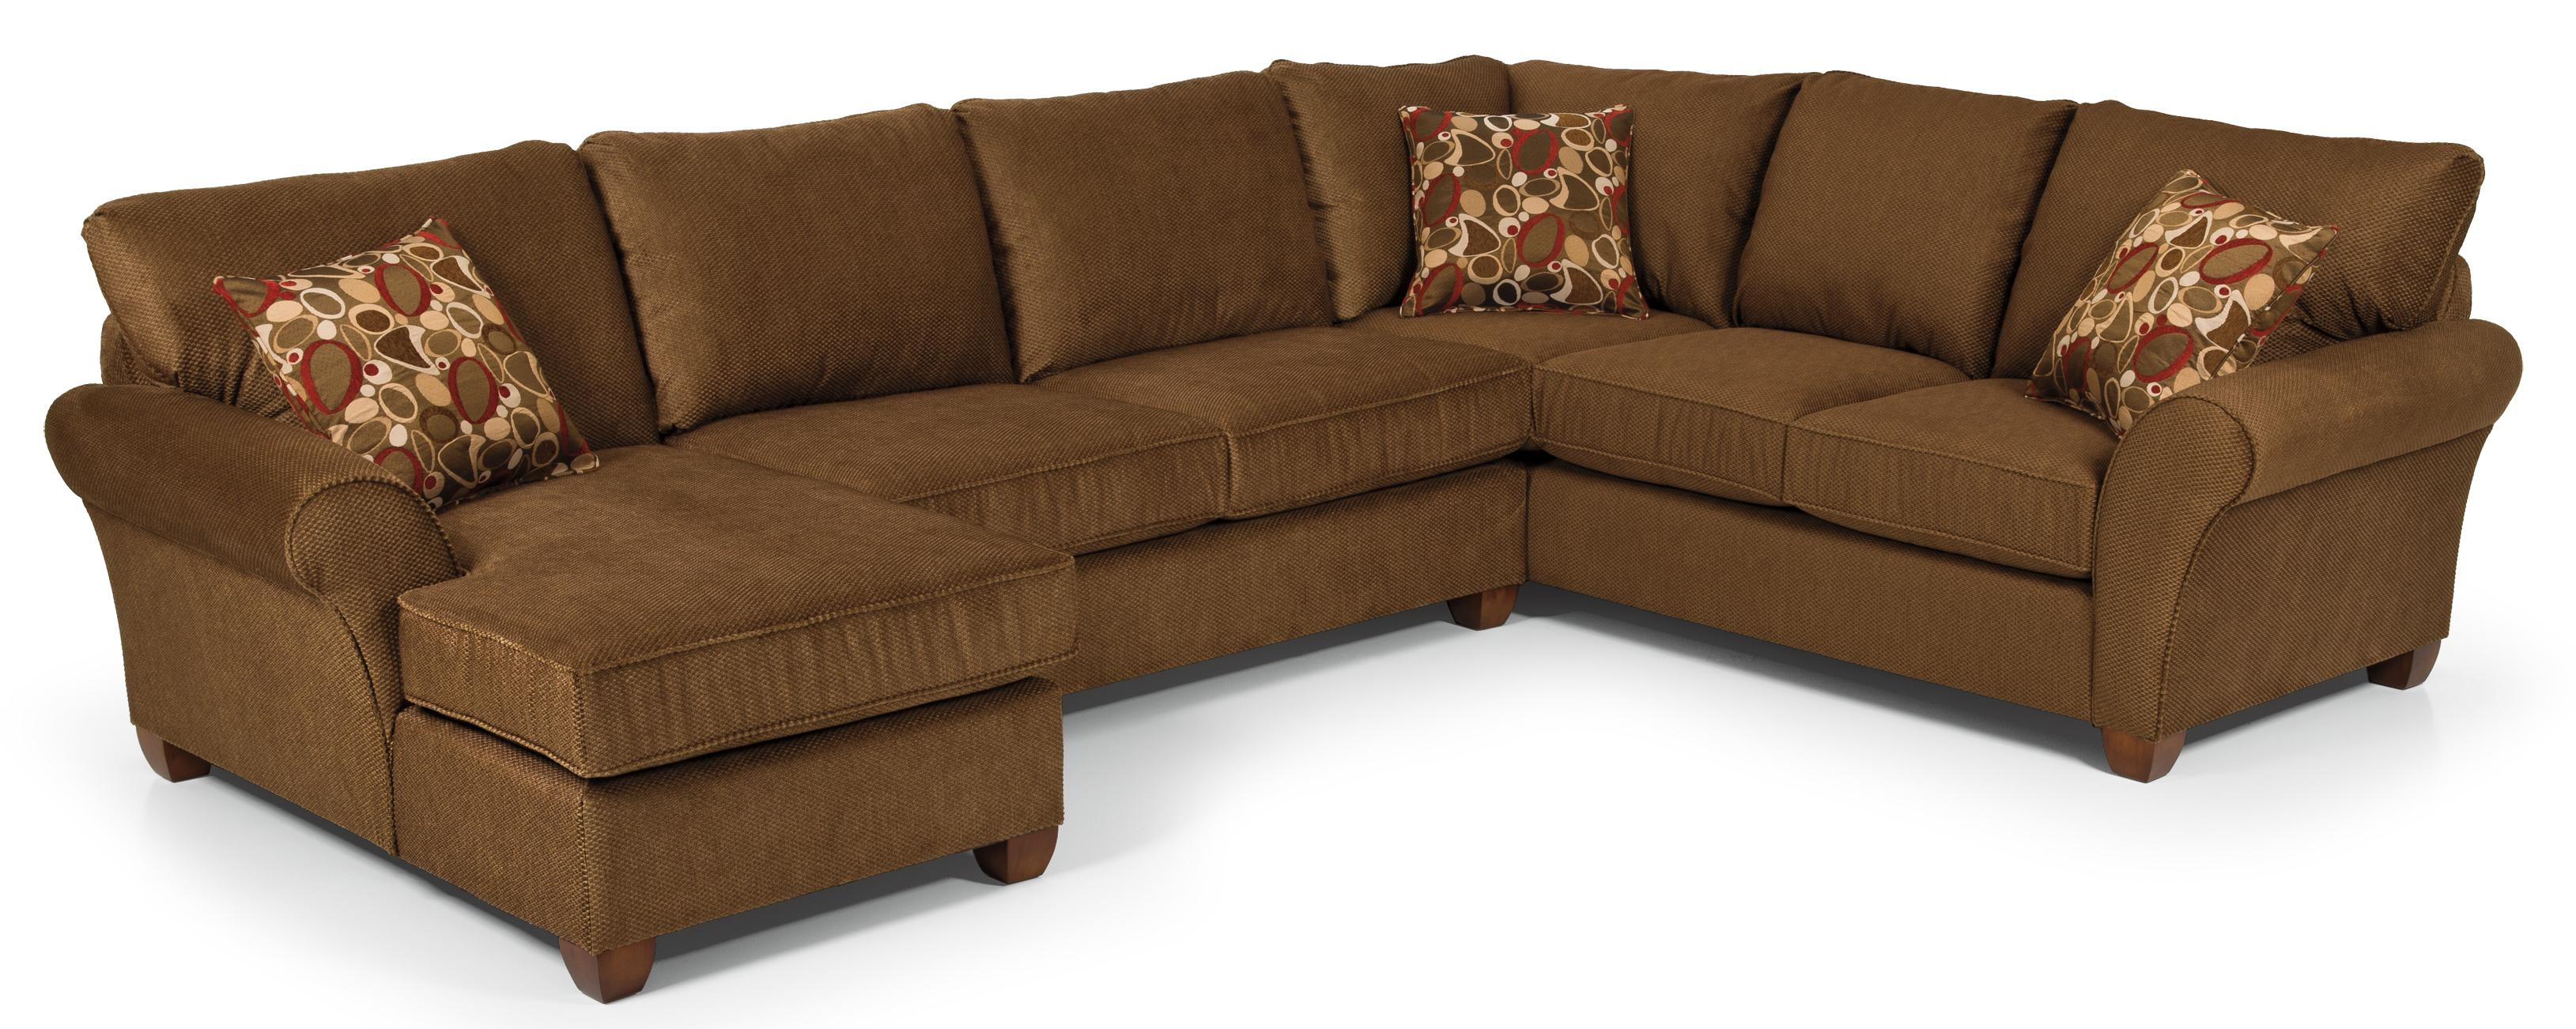 Stanton 320 Transitional Sectional Sofa - Item Number: 32021L+23+10R